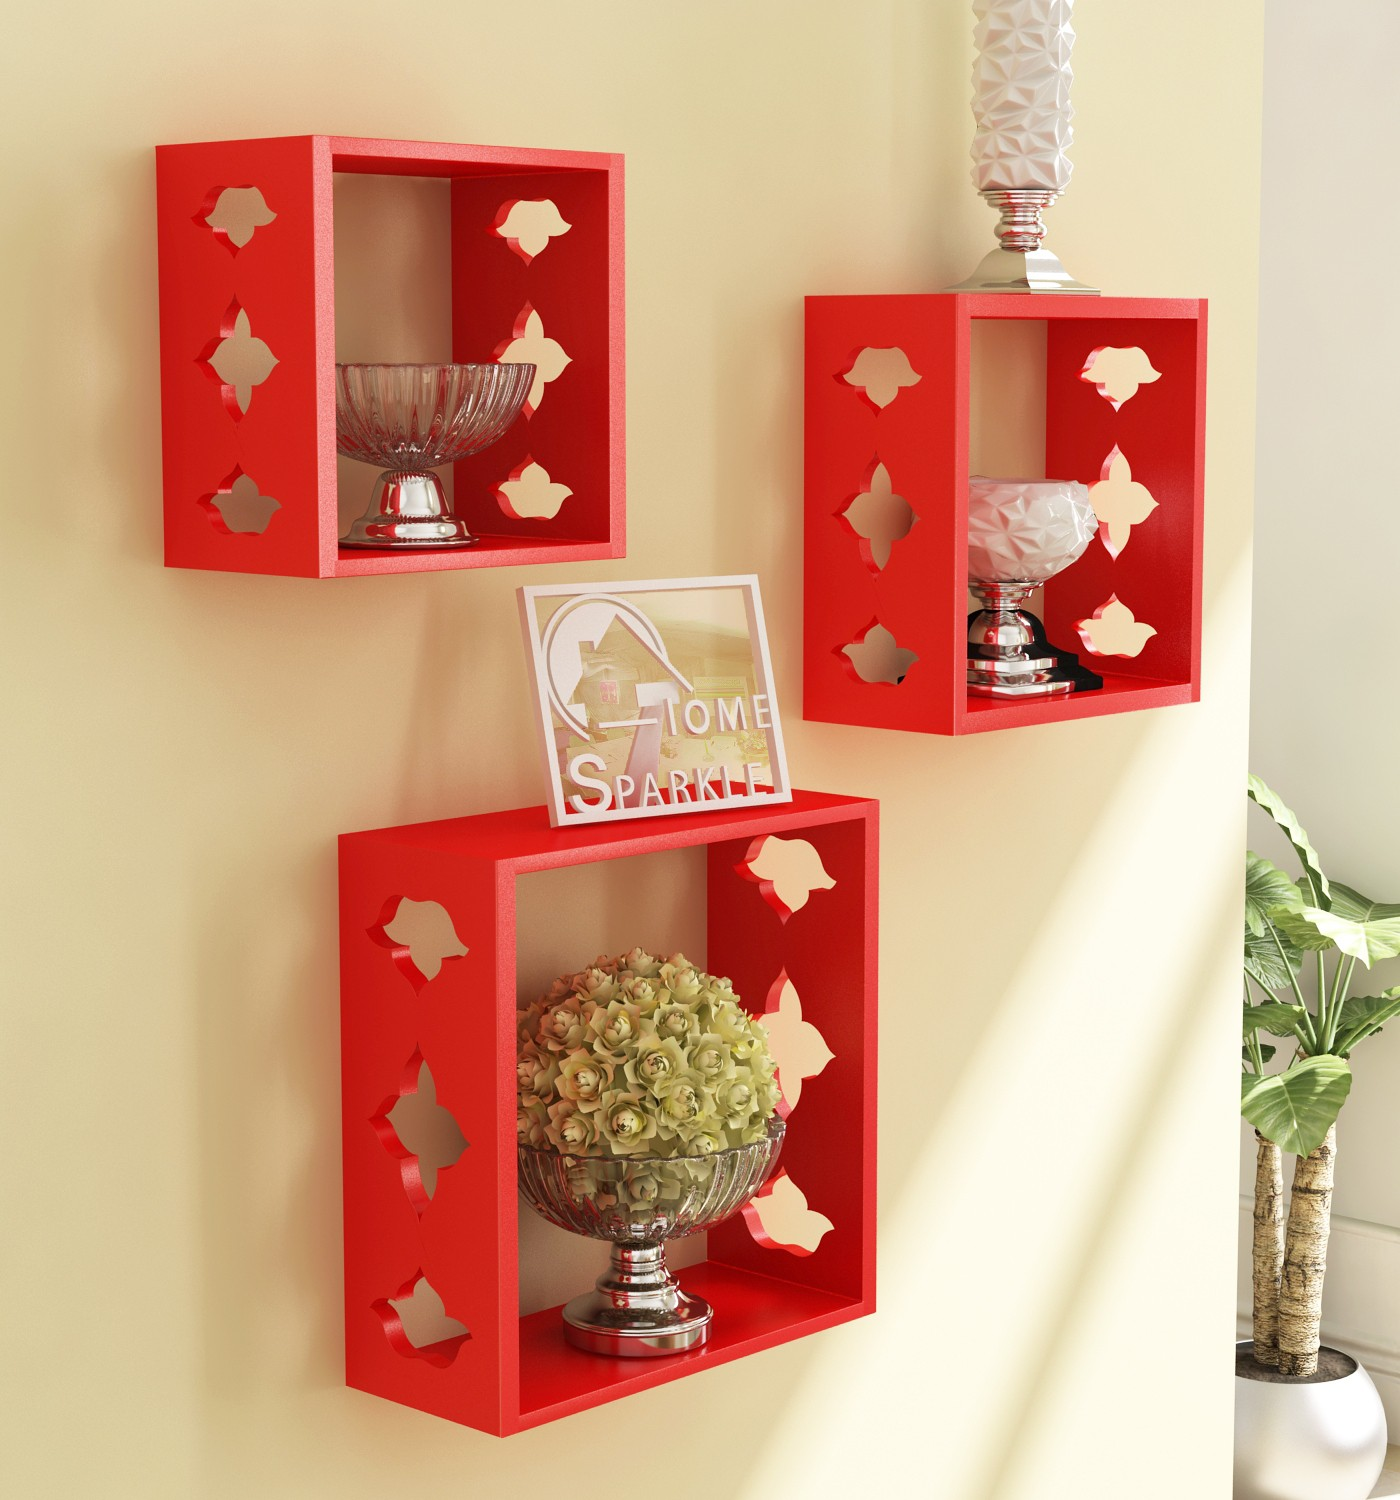 Deals | Wall Shelves Organise & Store